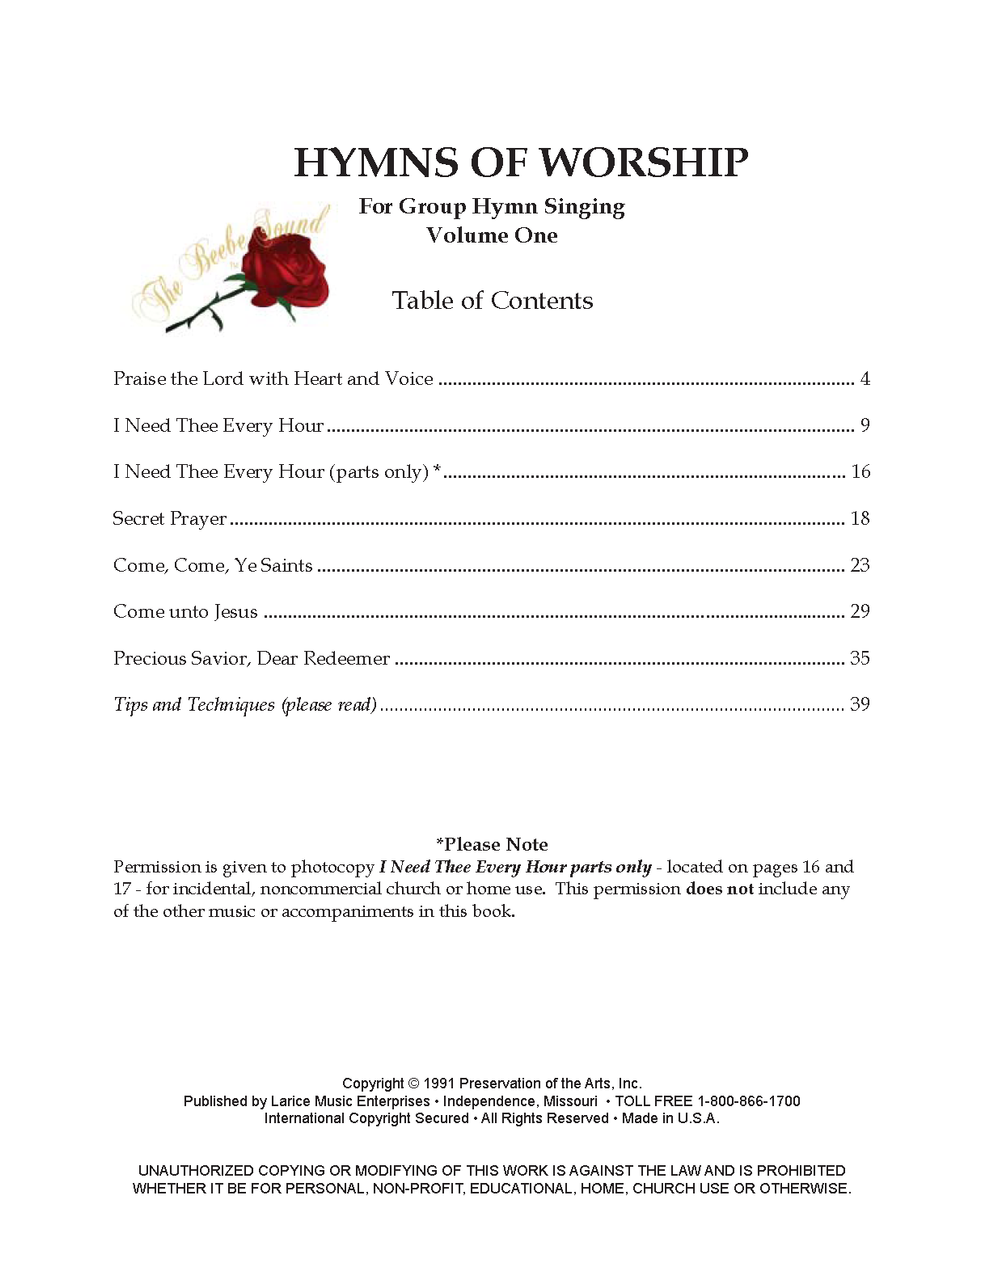 HYMNS OF WORSHIP - VOLUME 1 For Group Hymn Singing (Songbook) *